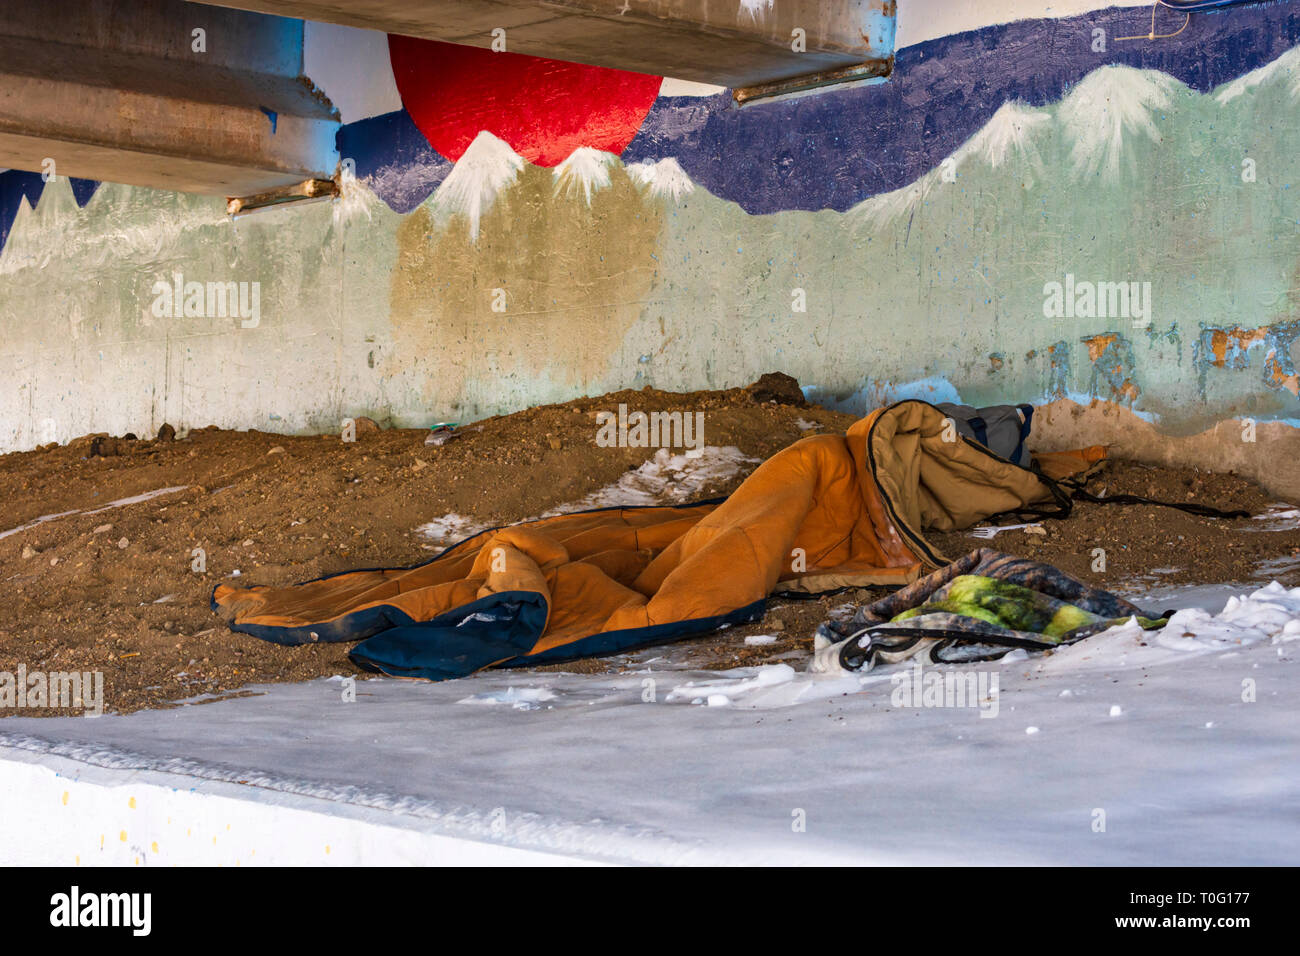 Homeless person's belongings and bedroll left in dirty highway underpass with drifted snow from recent snowfall, Castle Rock Colorado US. - Stock Image